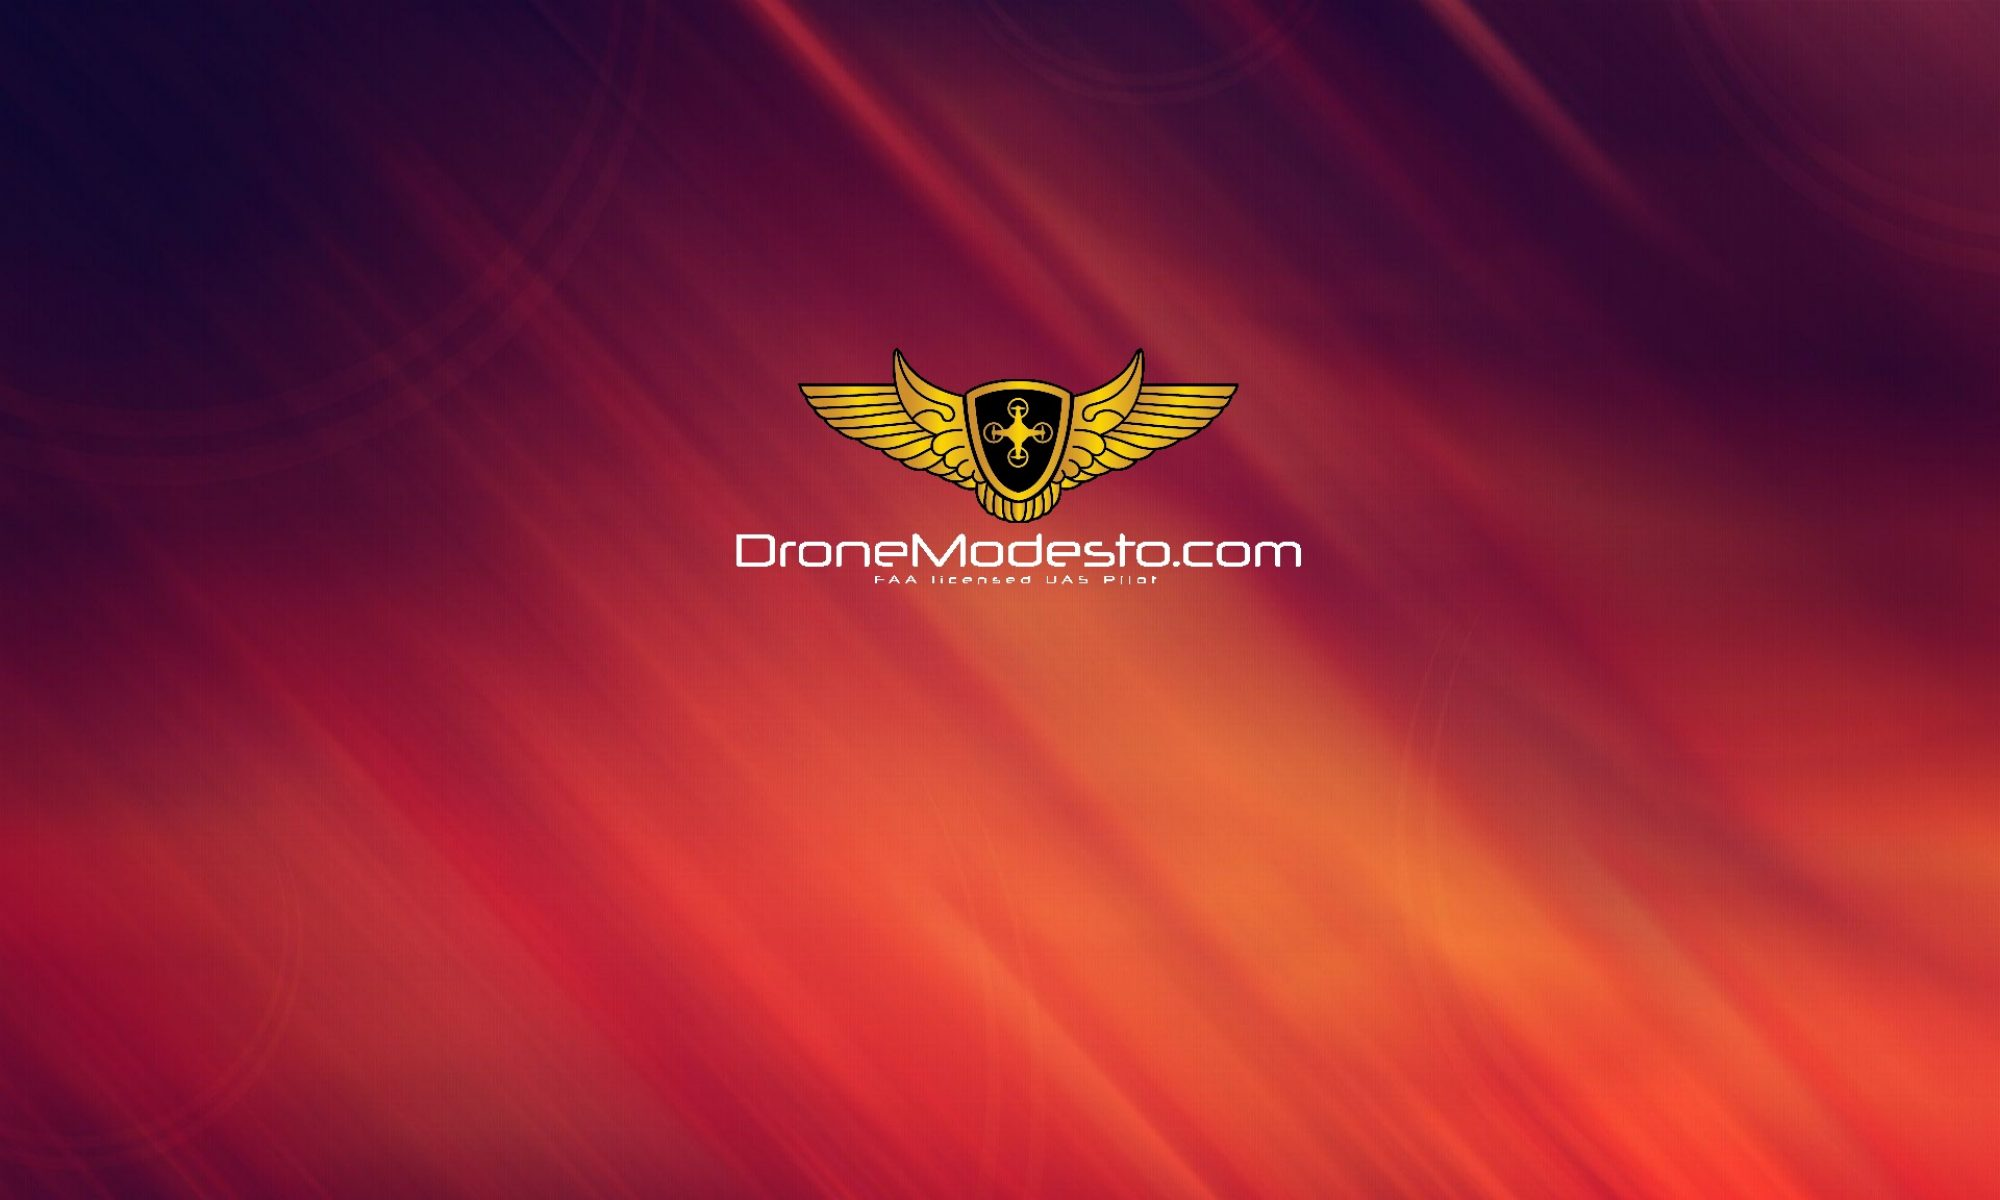 Modesto California Drone Services